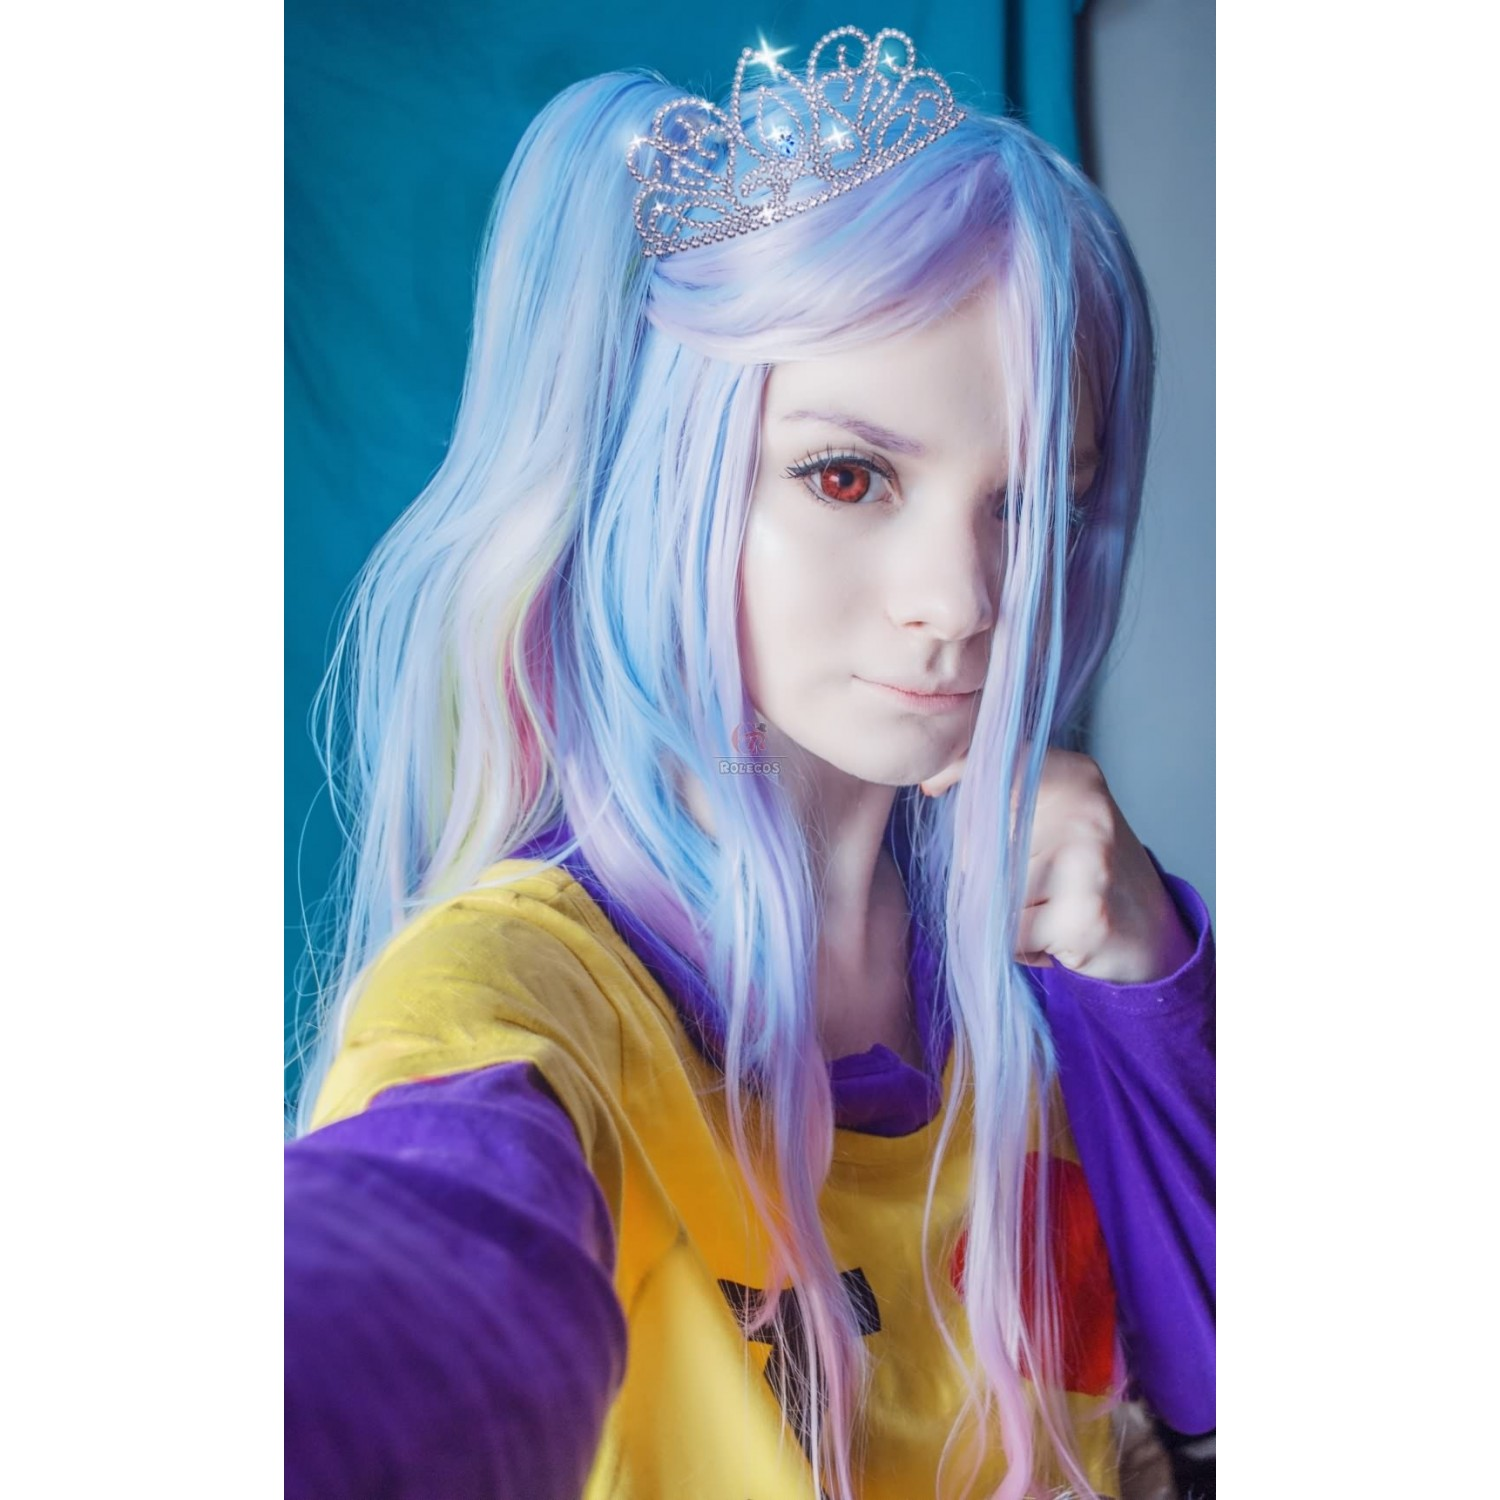 No Game No Life Shiro Synthetic Hair Cosplay Wig